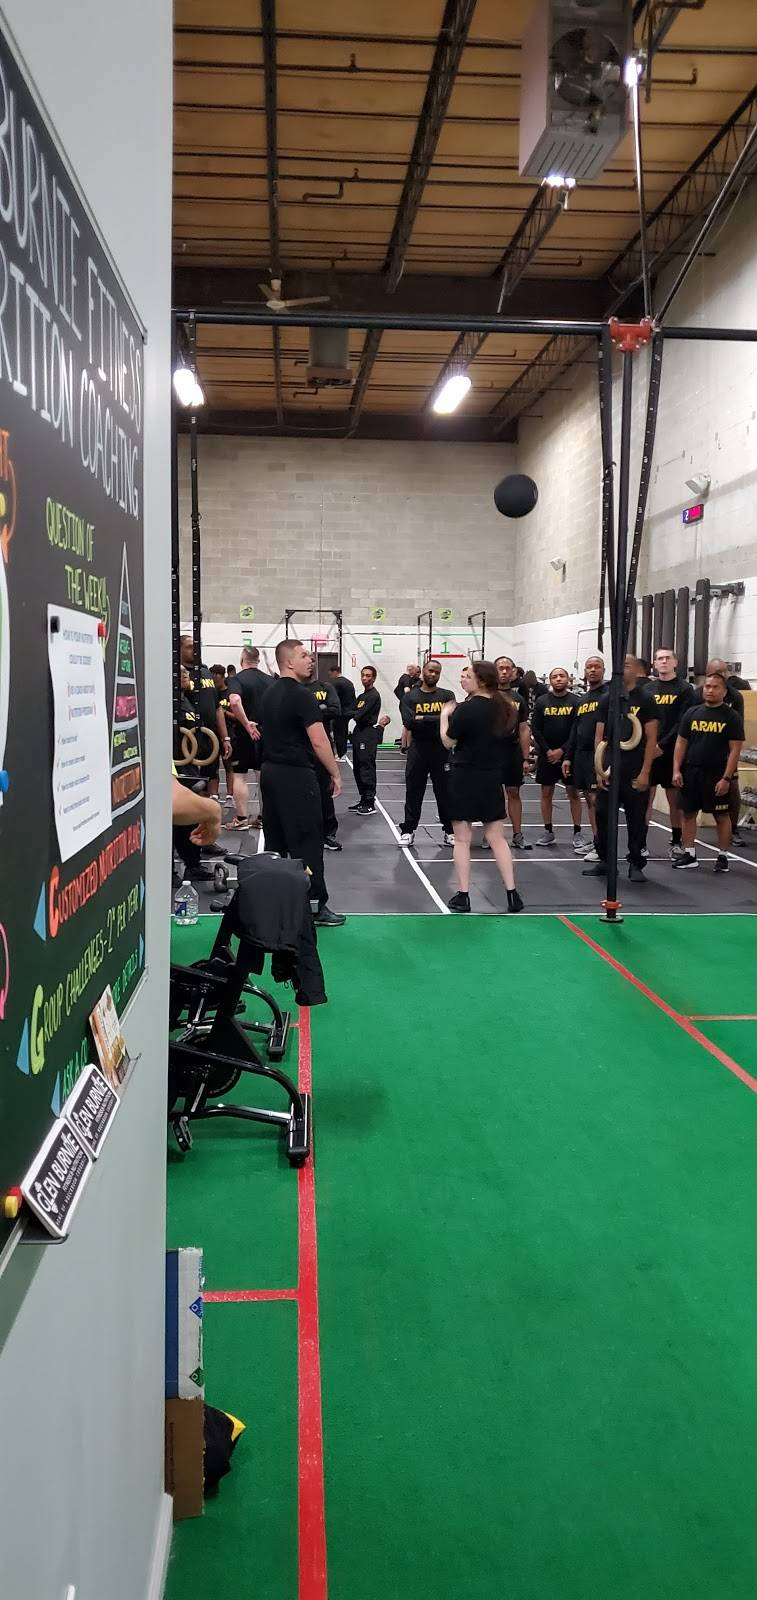 Glen Burnie Fitness and Nutrition: Home of Wreck Room CrossFit - gym  | Photo 1 of 8 | Address: 180 Penrod Ct suite d, Glen Burnie, MD 21061, USA | Phone: (443) 422-2779